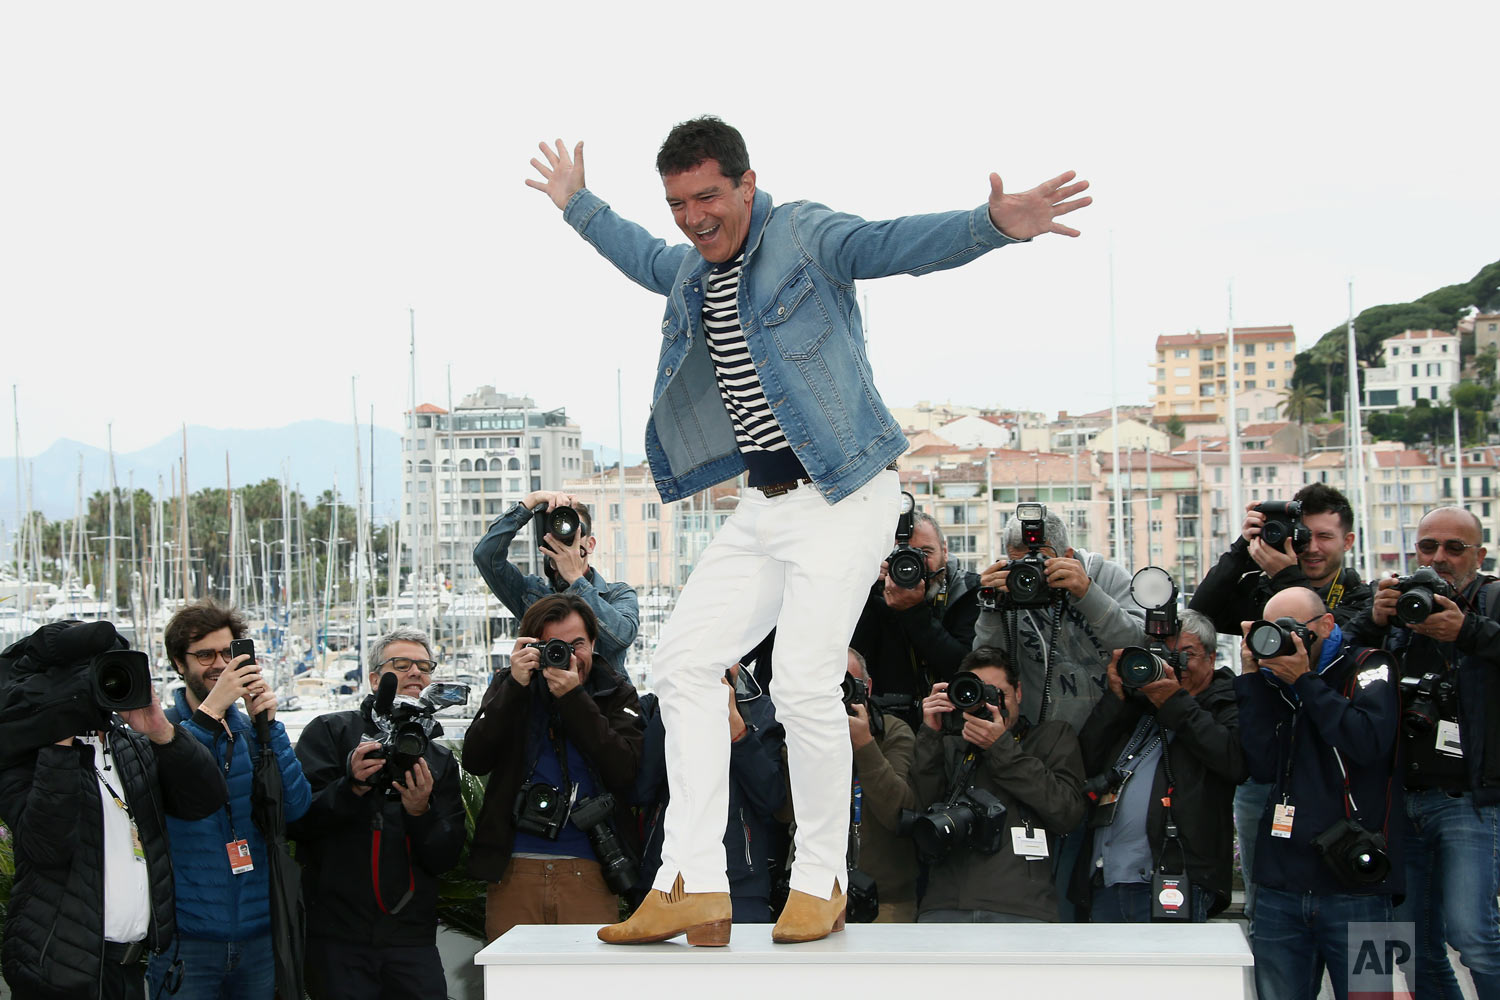 Actor Antonio Banderas poses for photographers at the photo call for the film 'Pain and Glory' at the 72nd international film festival, Cannes, southern France, May 18, 2019. (Photo by Joel C Ryan/Invision/AP)